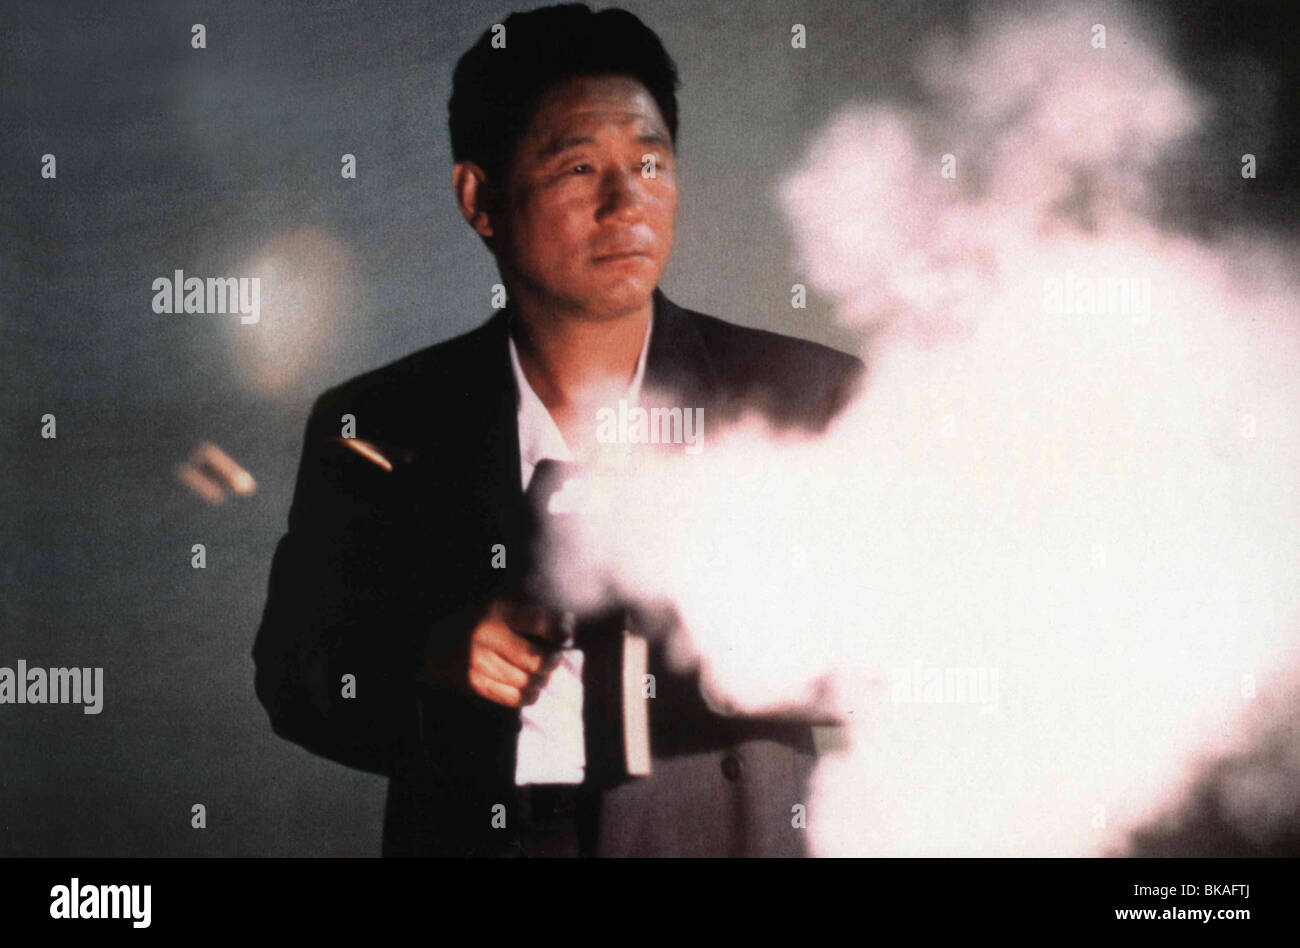 Sonatine  Year : 1993 Japan Director : Takeshi Kitano Takeshi Kitano - Stock Image